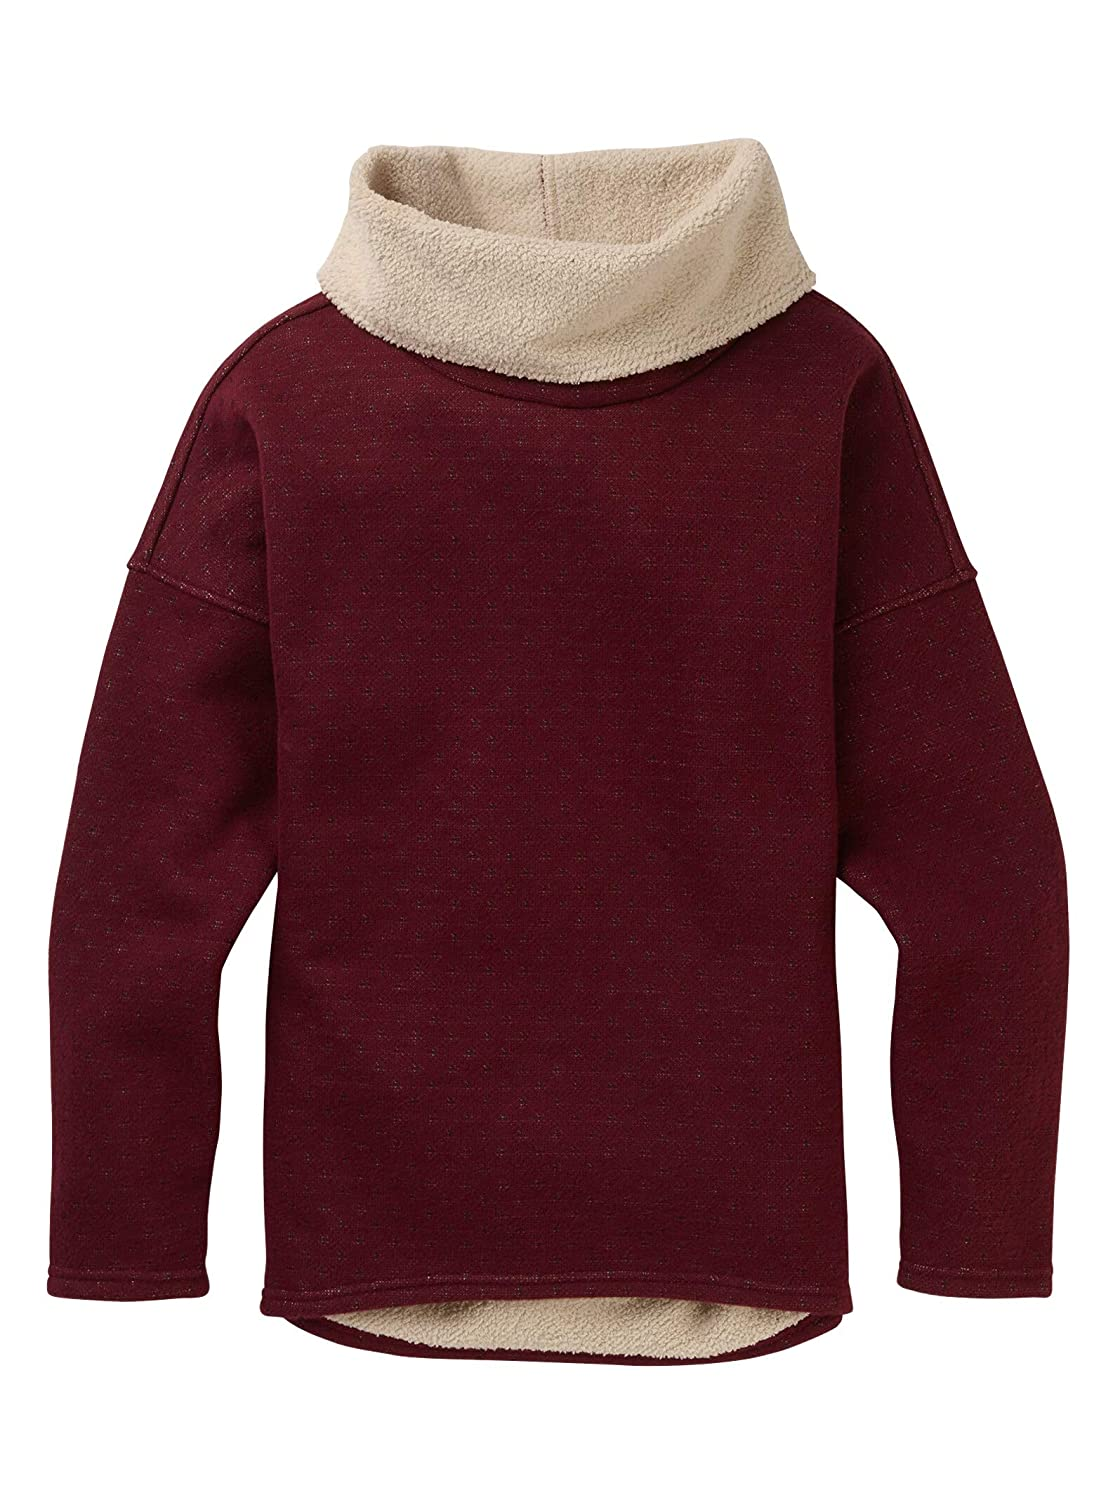 Burton Women's Women's Ellmore Premium Pullover, Port Royal, Medium